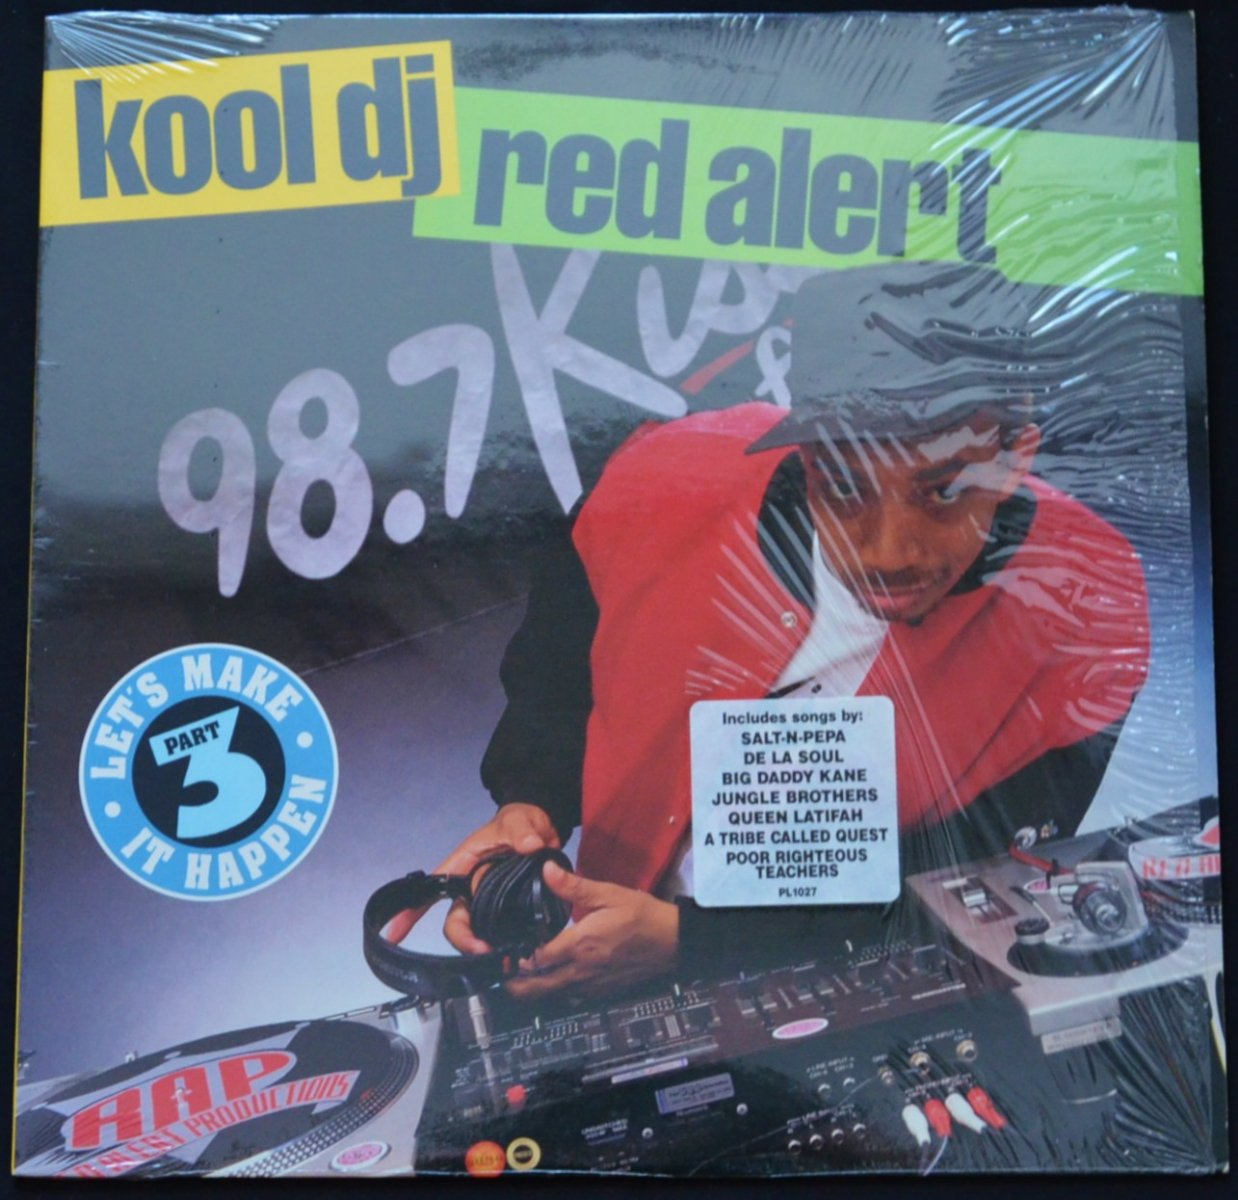 KOOL DJ RED ALERT / (PART 3) LET'S MAKE IT HAPPEN (1LP)